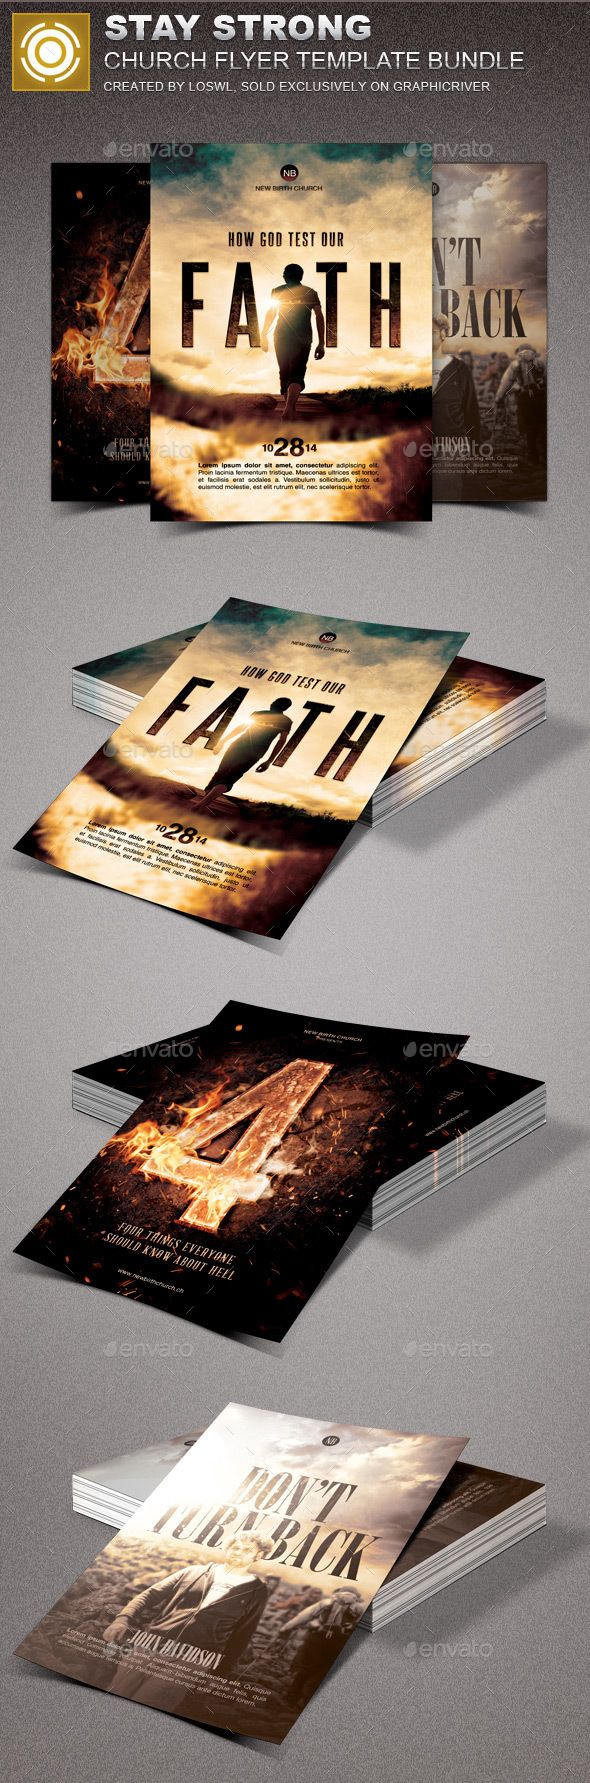 ideas about marketing flyers flyer design stay strong church marketing flyer template psd bundle here